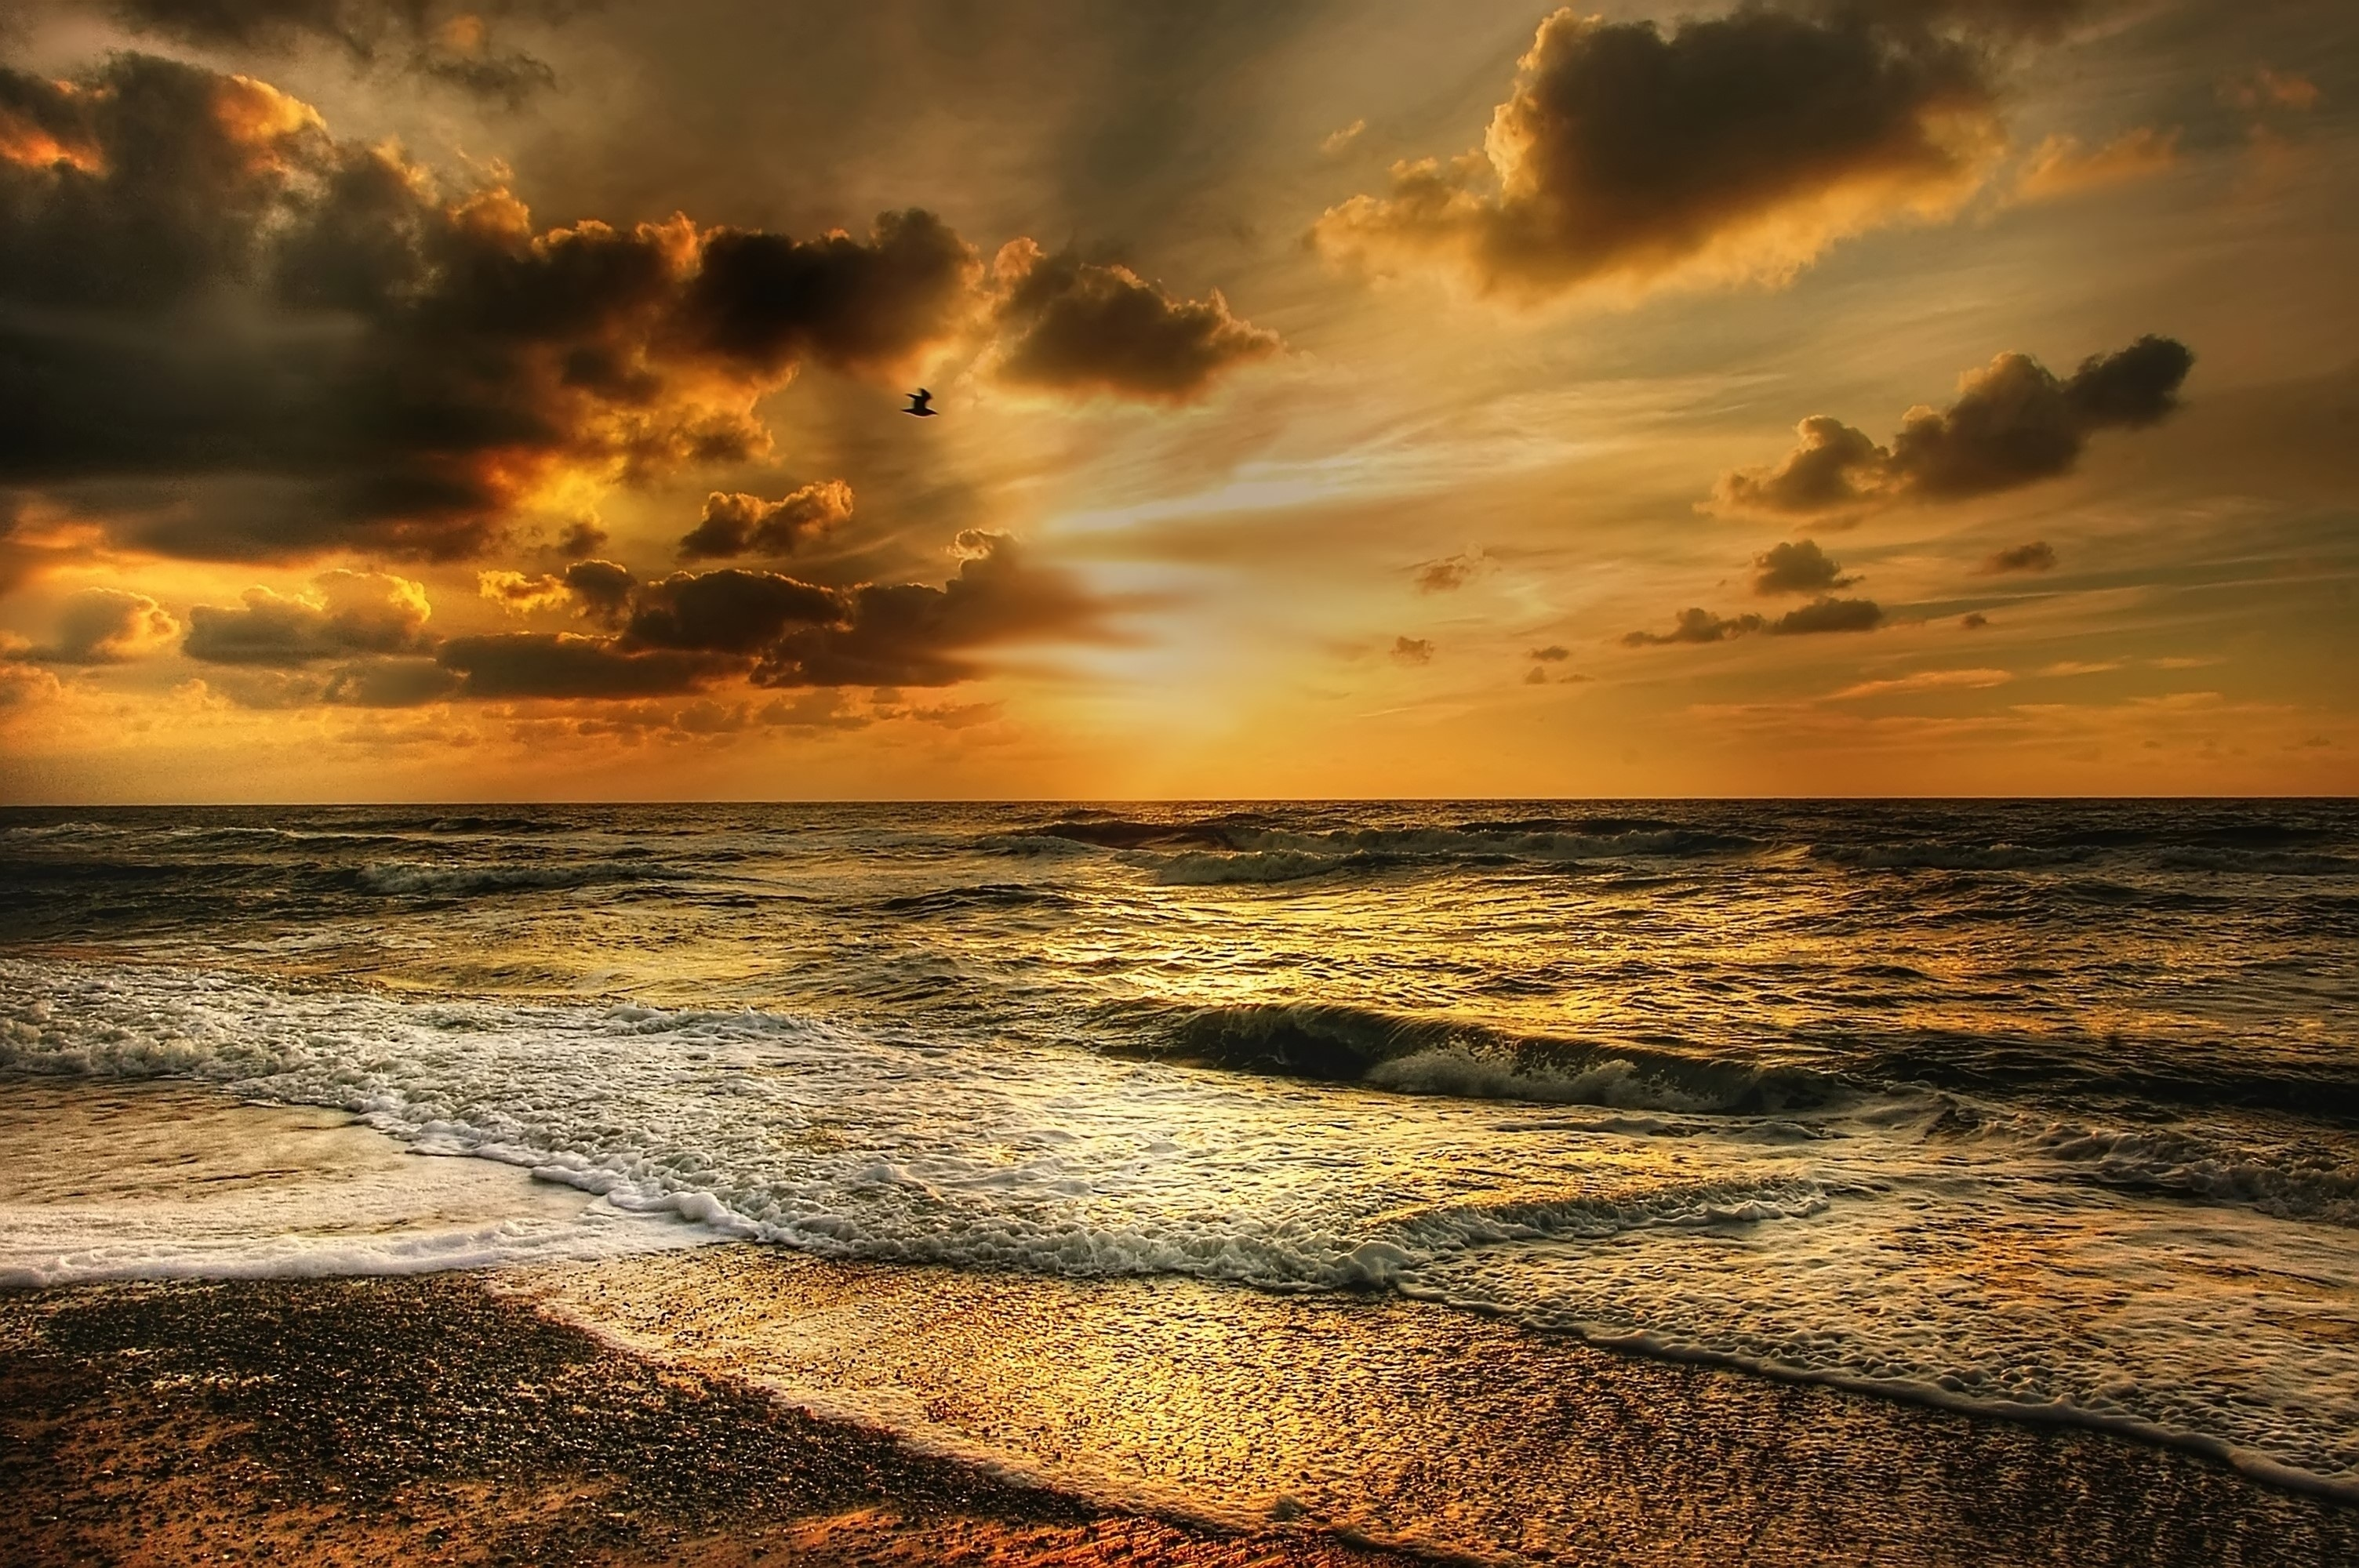 Nature Hd Wallpapers For Iphone Seashore During Sunset 183 Free Stock Photo